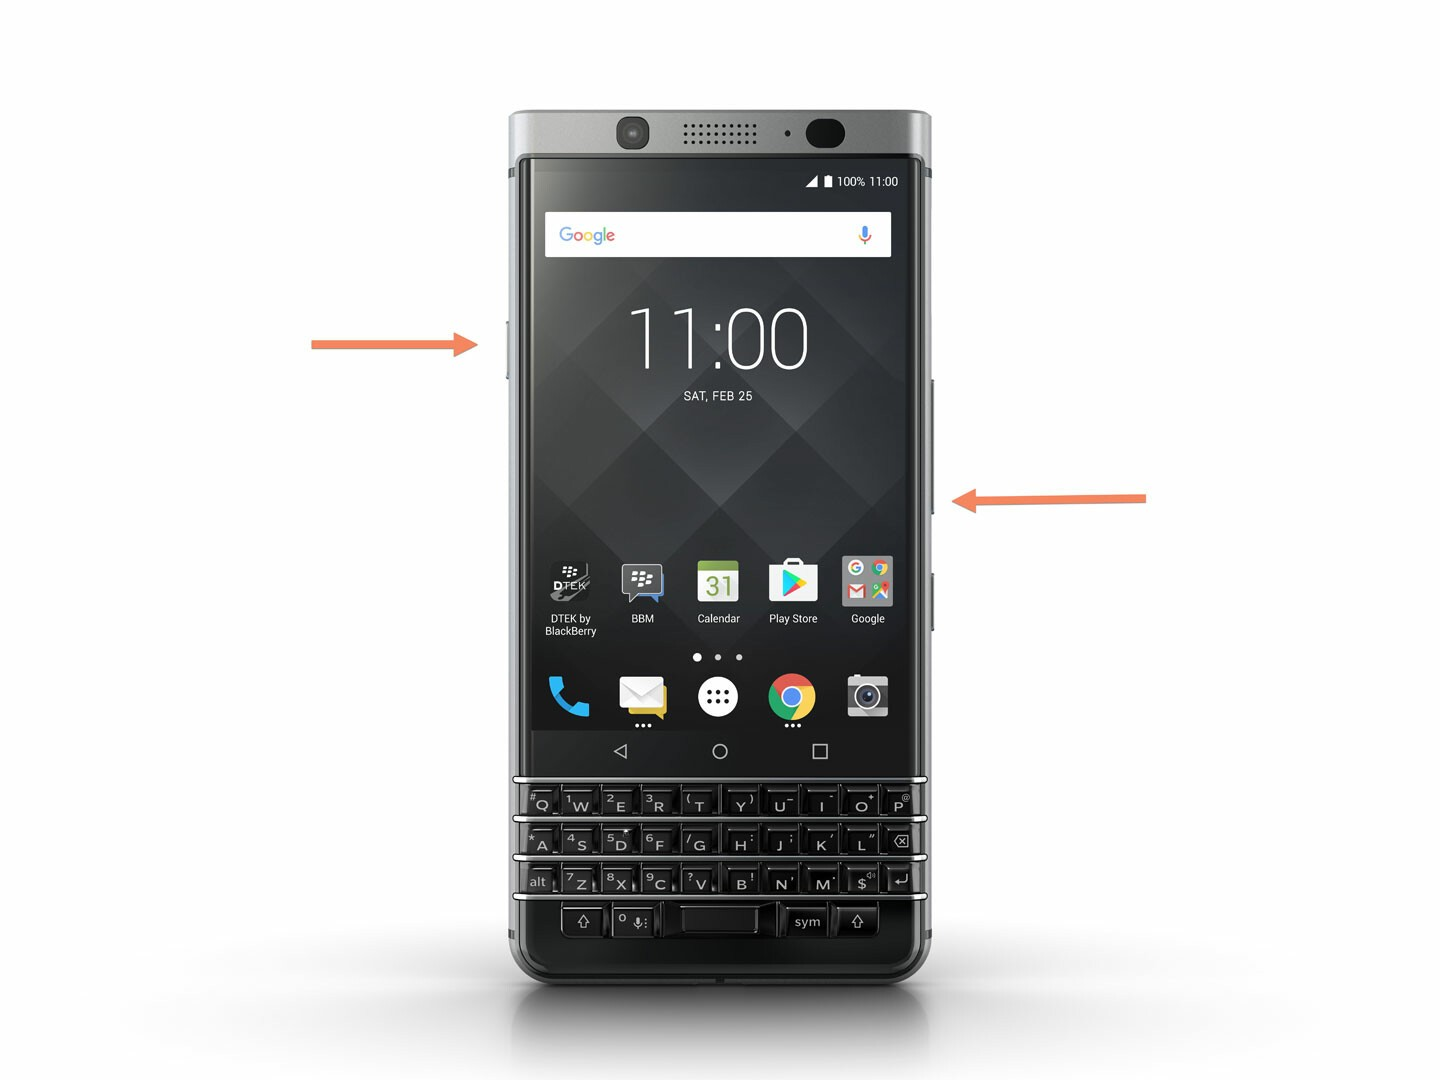 How to take a screenshot on the BlackBerry KEYone